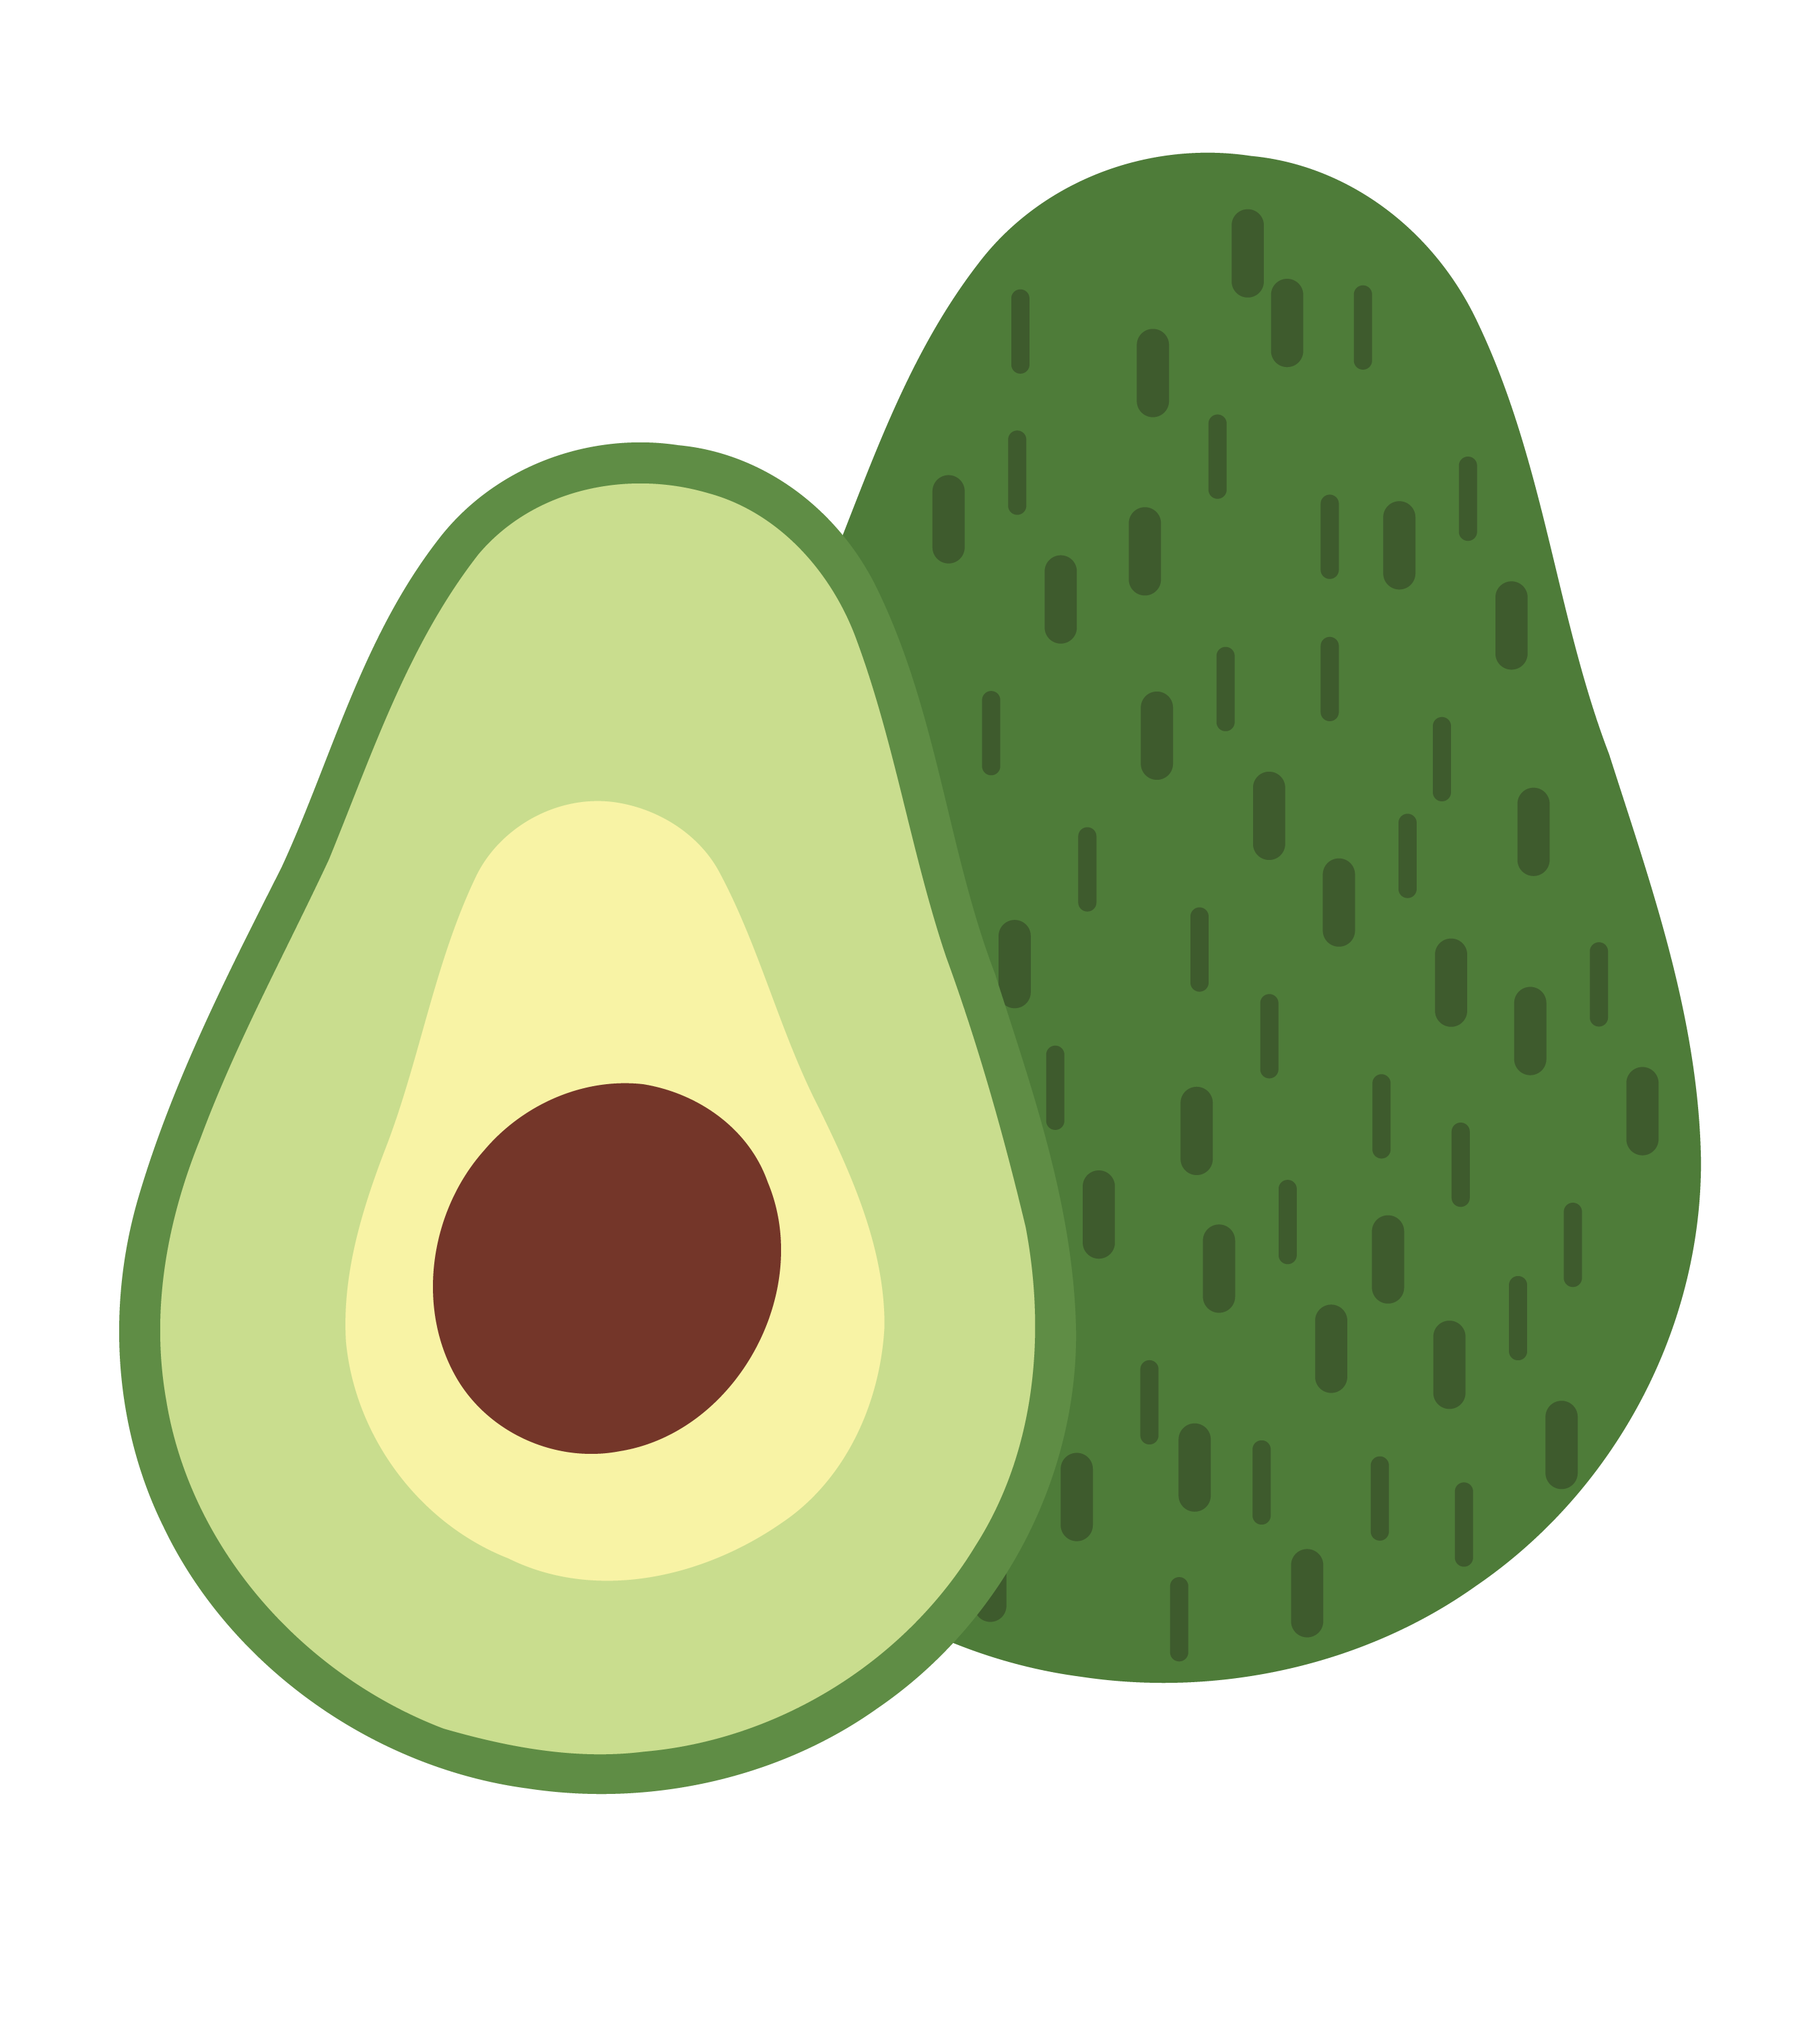 Nuts clipart avocado, ...